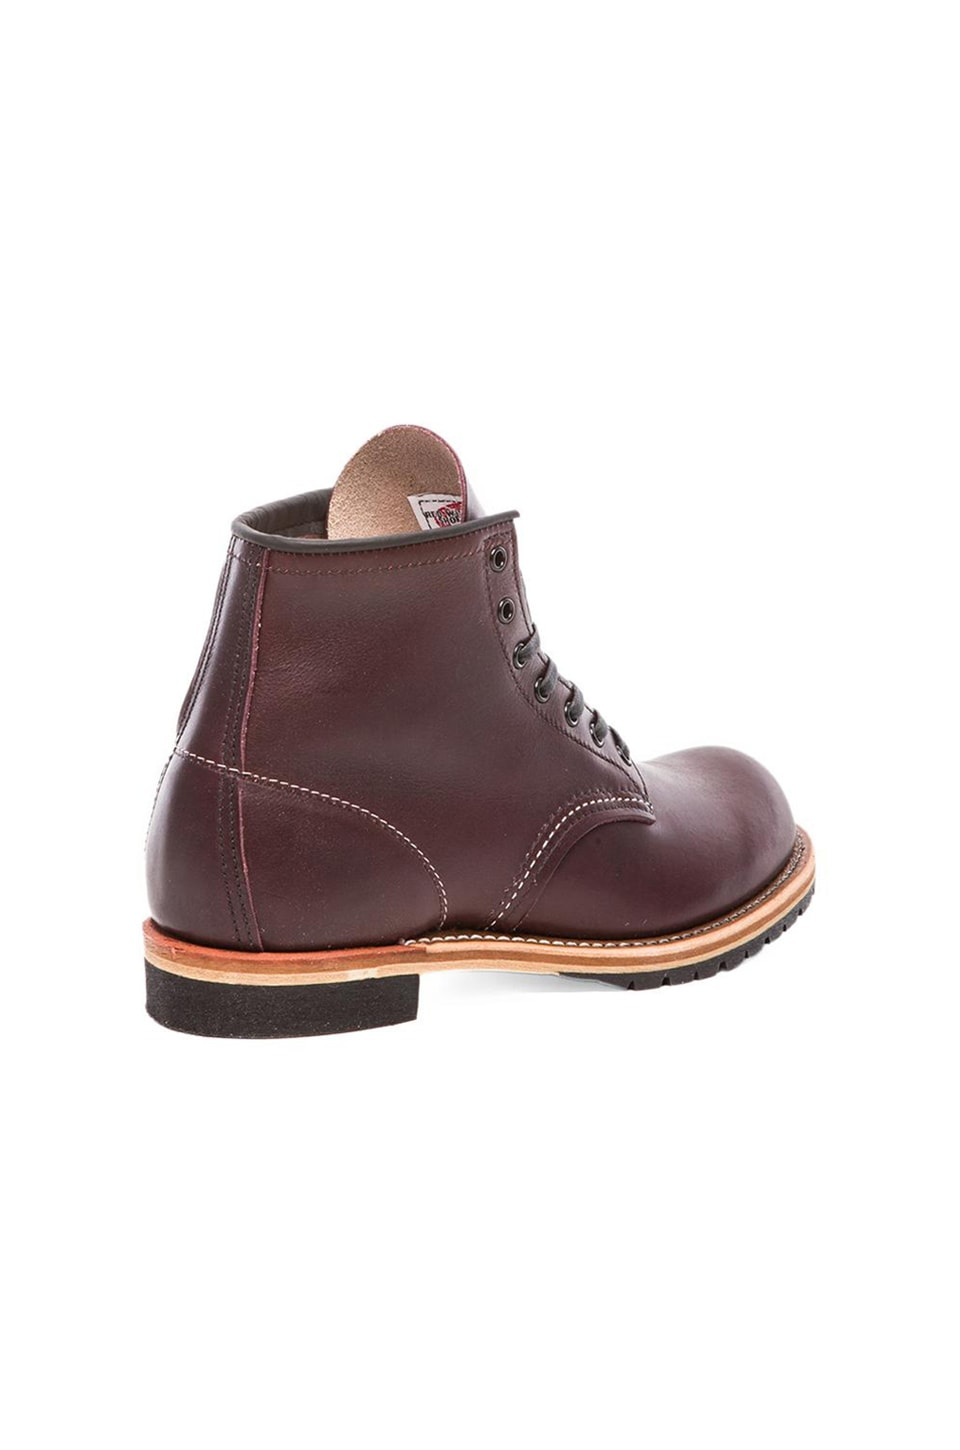 "Red Wing Shoes Beckman 6"" Round in Black Cherry Featherstone"